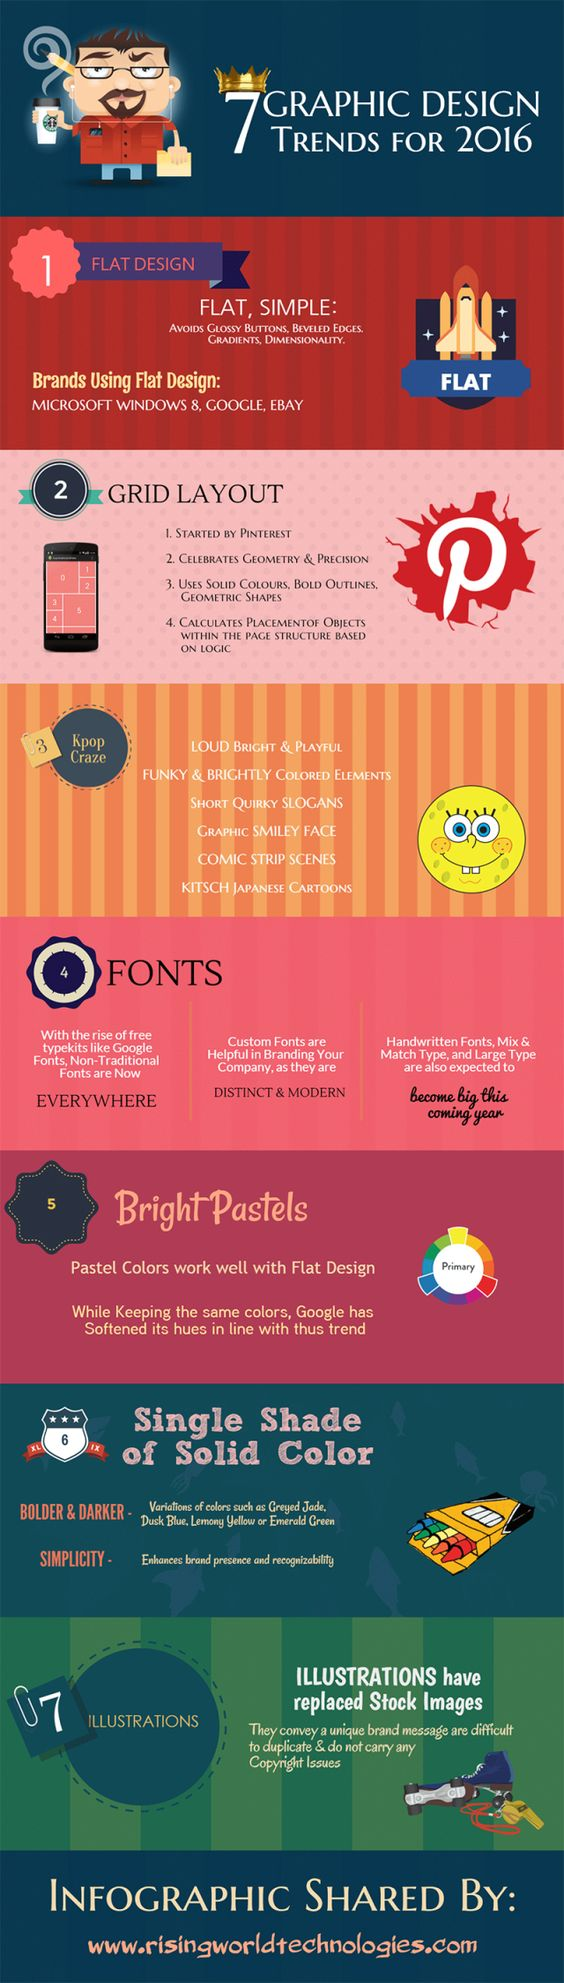 7 Graphic Design Trends That Will Help Your Business Stand Out In 2016 #Infographic